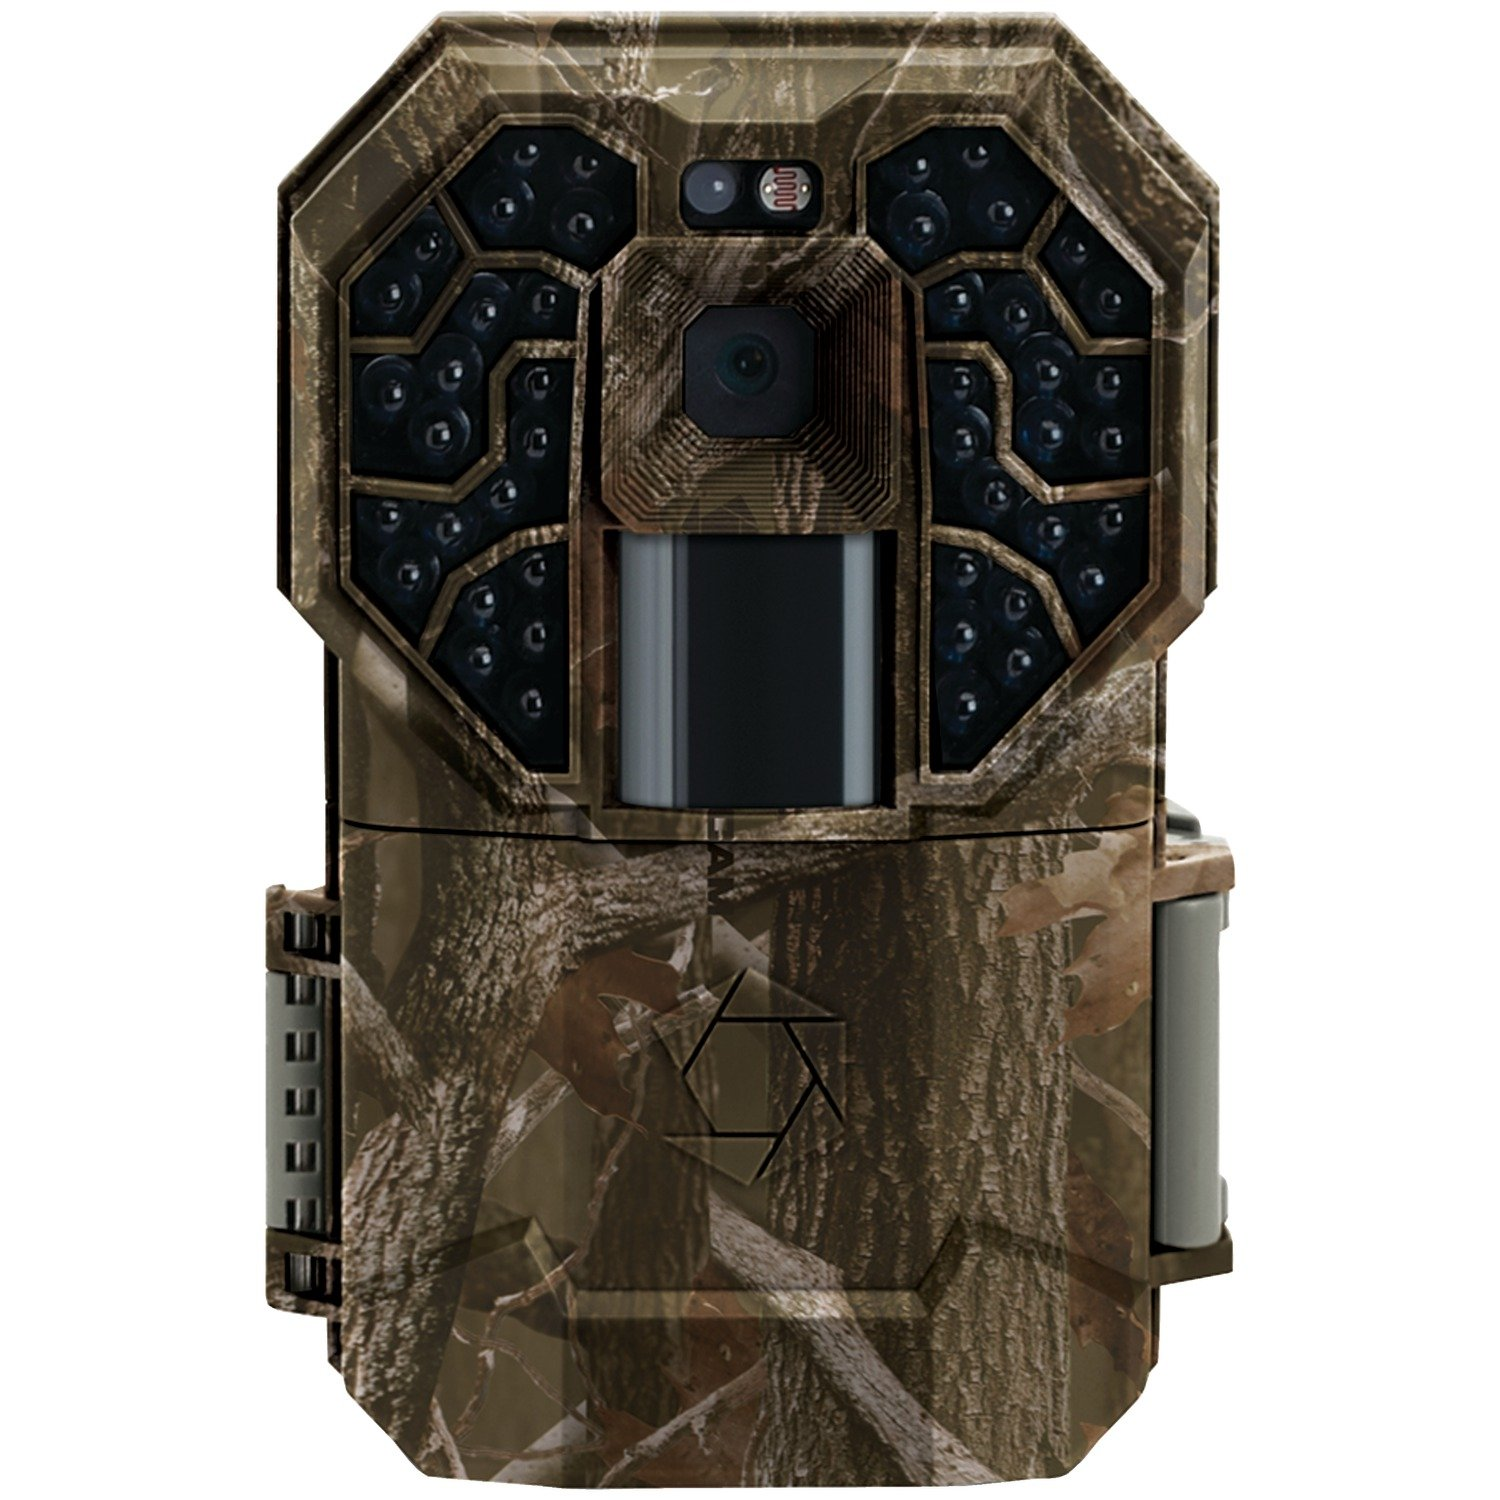 Stealth Cam Stc-g45ng 12.0-megapixel G45ng No Glo Game Camera by Stealth Cam